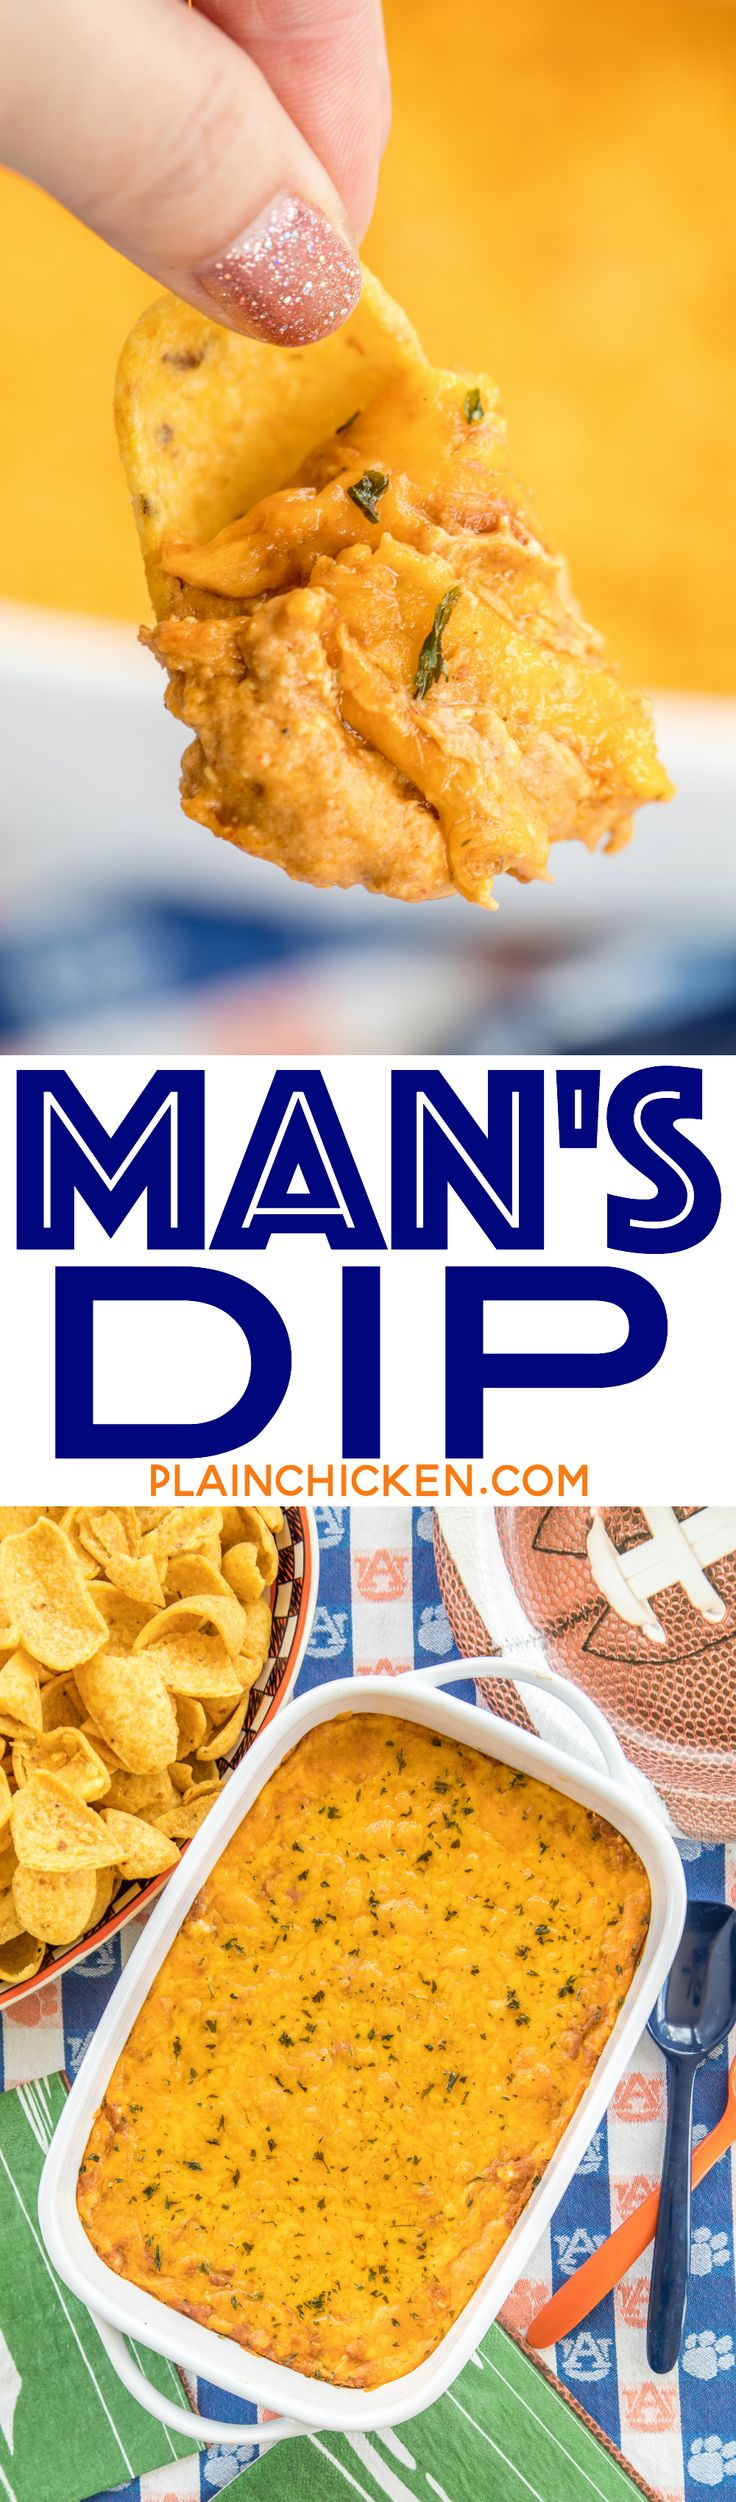 Man's Dip - creamy Mexican bean dip with a kick. Starts with canned bean dip. Add cream cheese, sour cream, taco seasoning, hot sauce and cheese. This was one of the first things to go at our party! Everyone asked for the recipe. #partyfood #beandip #dip